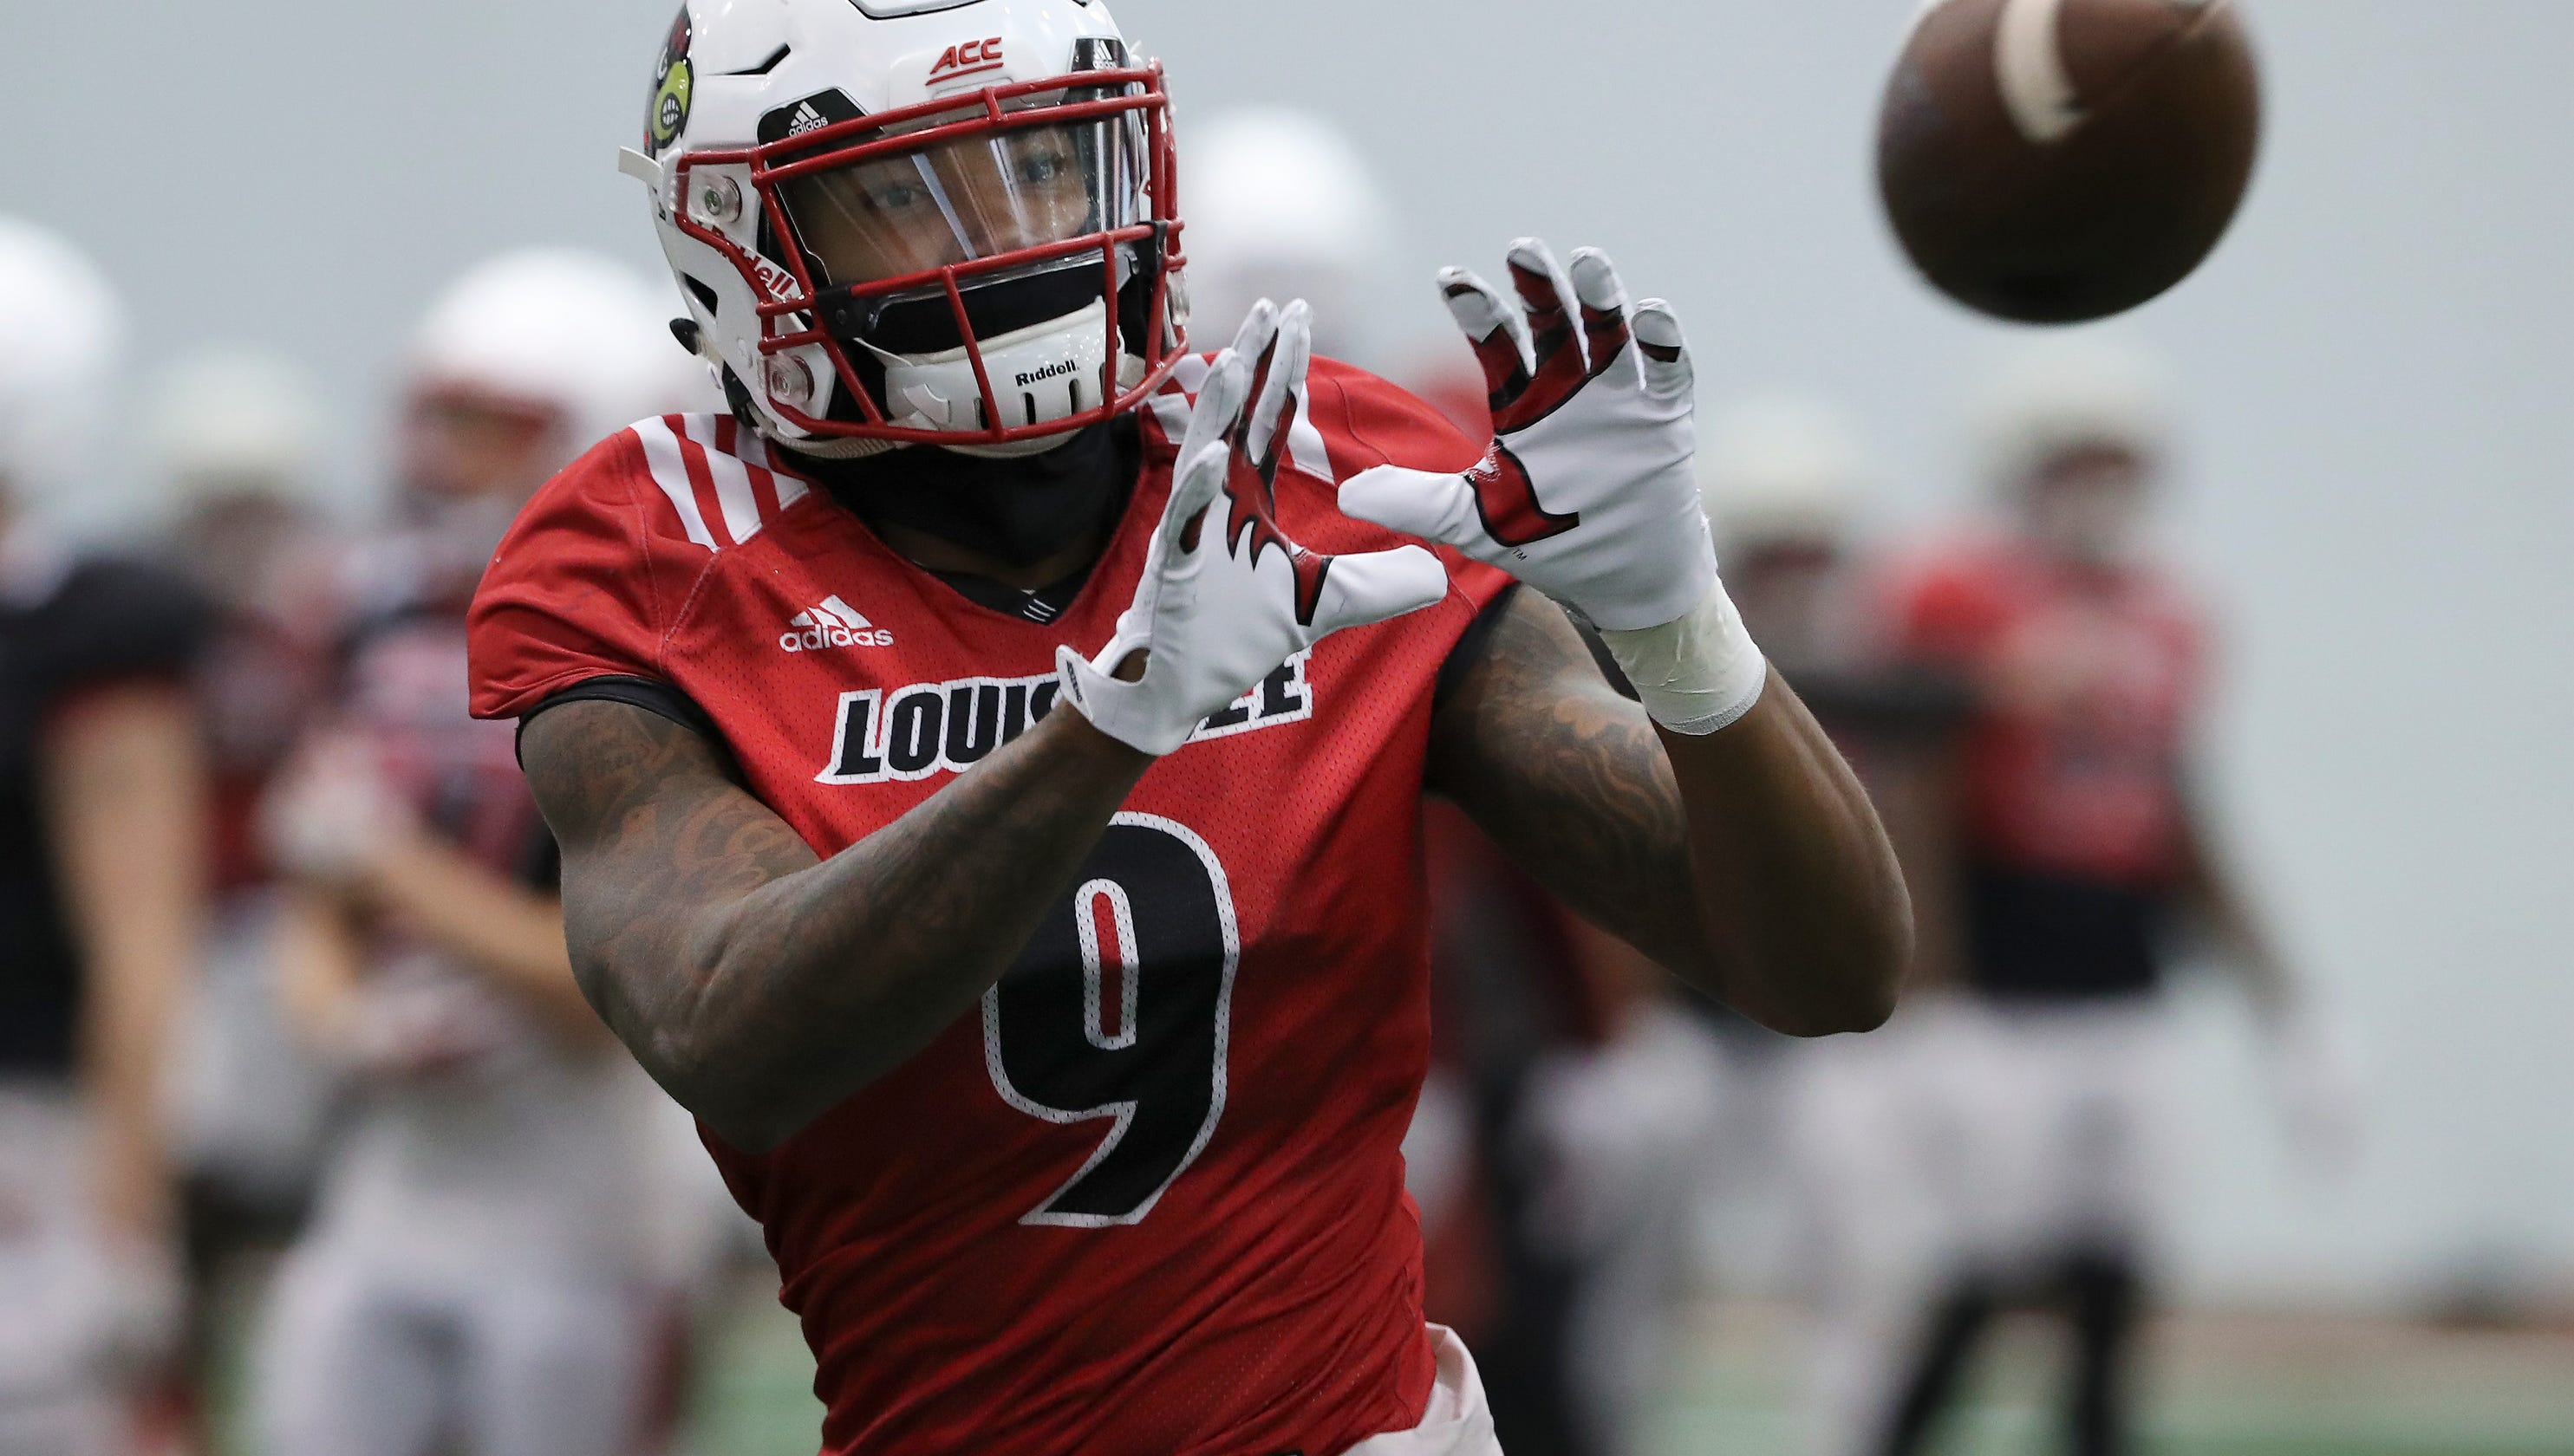 newest 7ef83 a3a57 Louisville football: Jaylen Smith at end of eventful journey